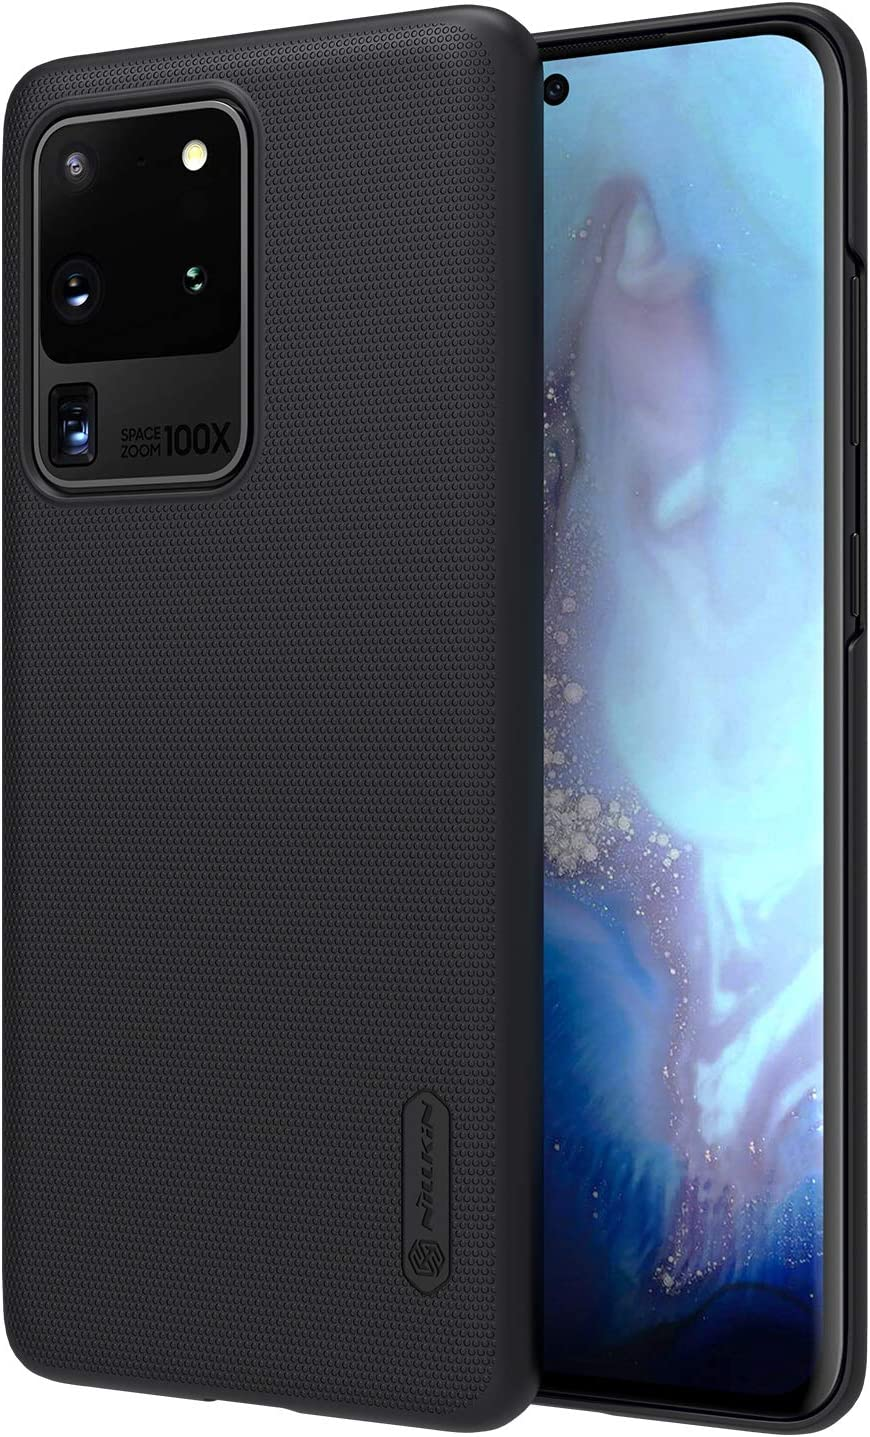 Nillkin Samsung Galaxy S20 Ultra Case - Slim Frosted Case Full Cover Protection, Anti-Falling, Anti-Fingerprint Simple Style Case for Galaxy S20 Ultra 5G 6.9 inch 2020, Black